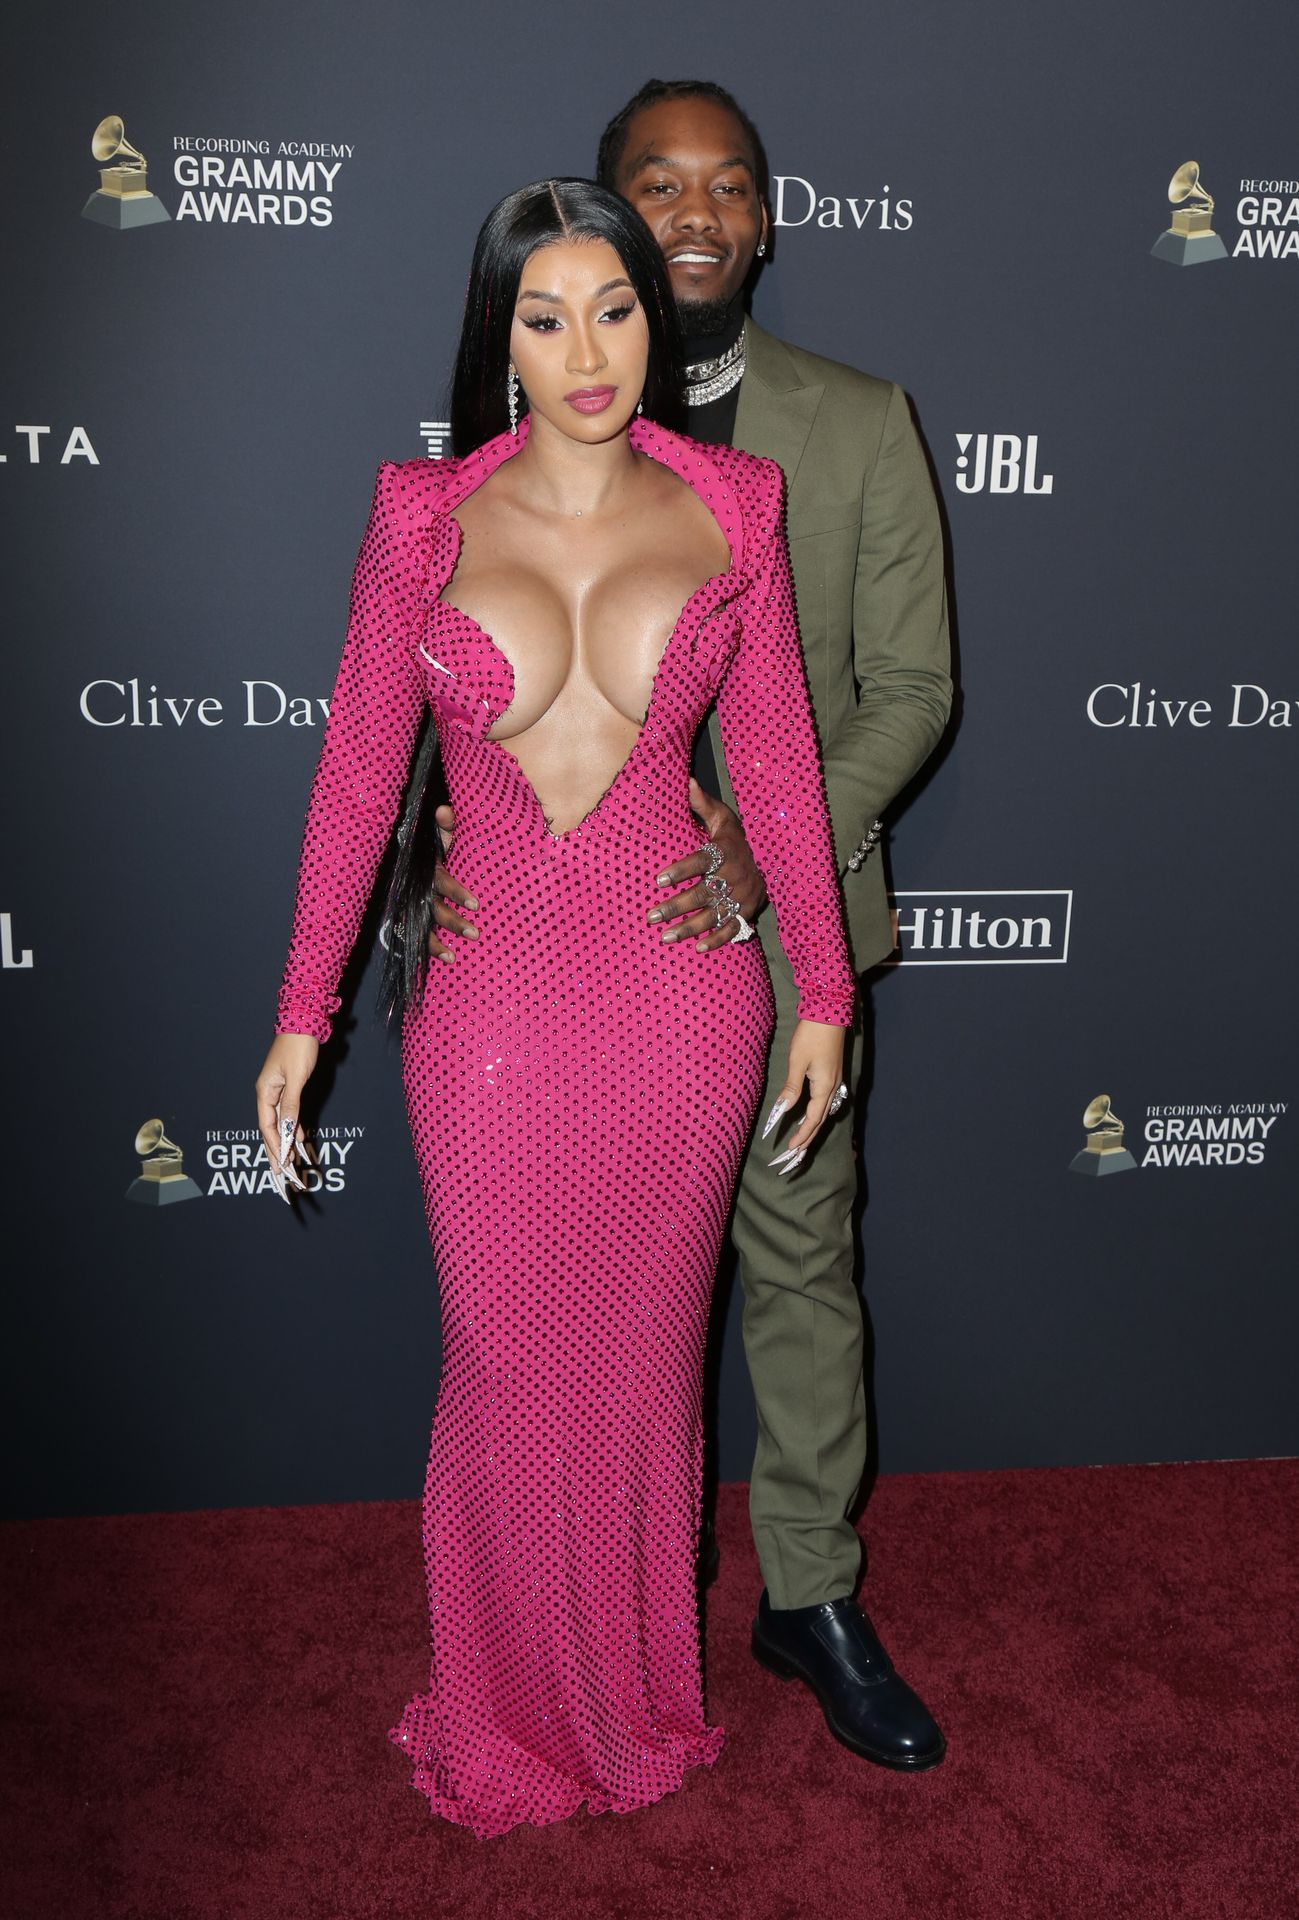 Offset Covers Cardi B's Boobs To Avoid Wardrobe Malfunction At Clive Davis Pre Grammy Party 0070